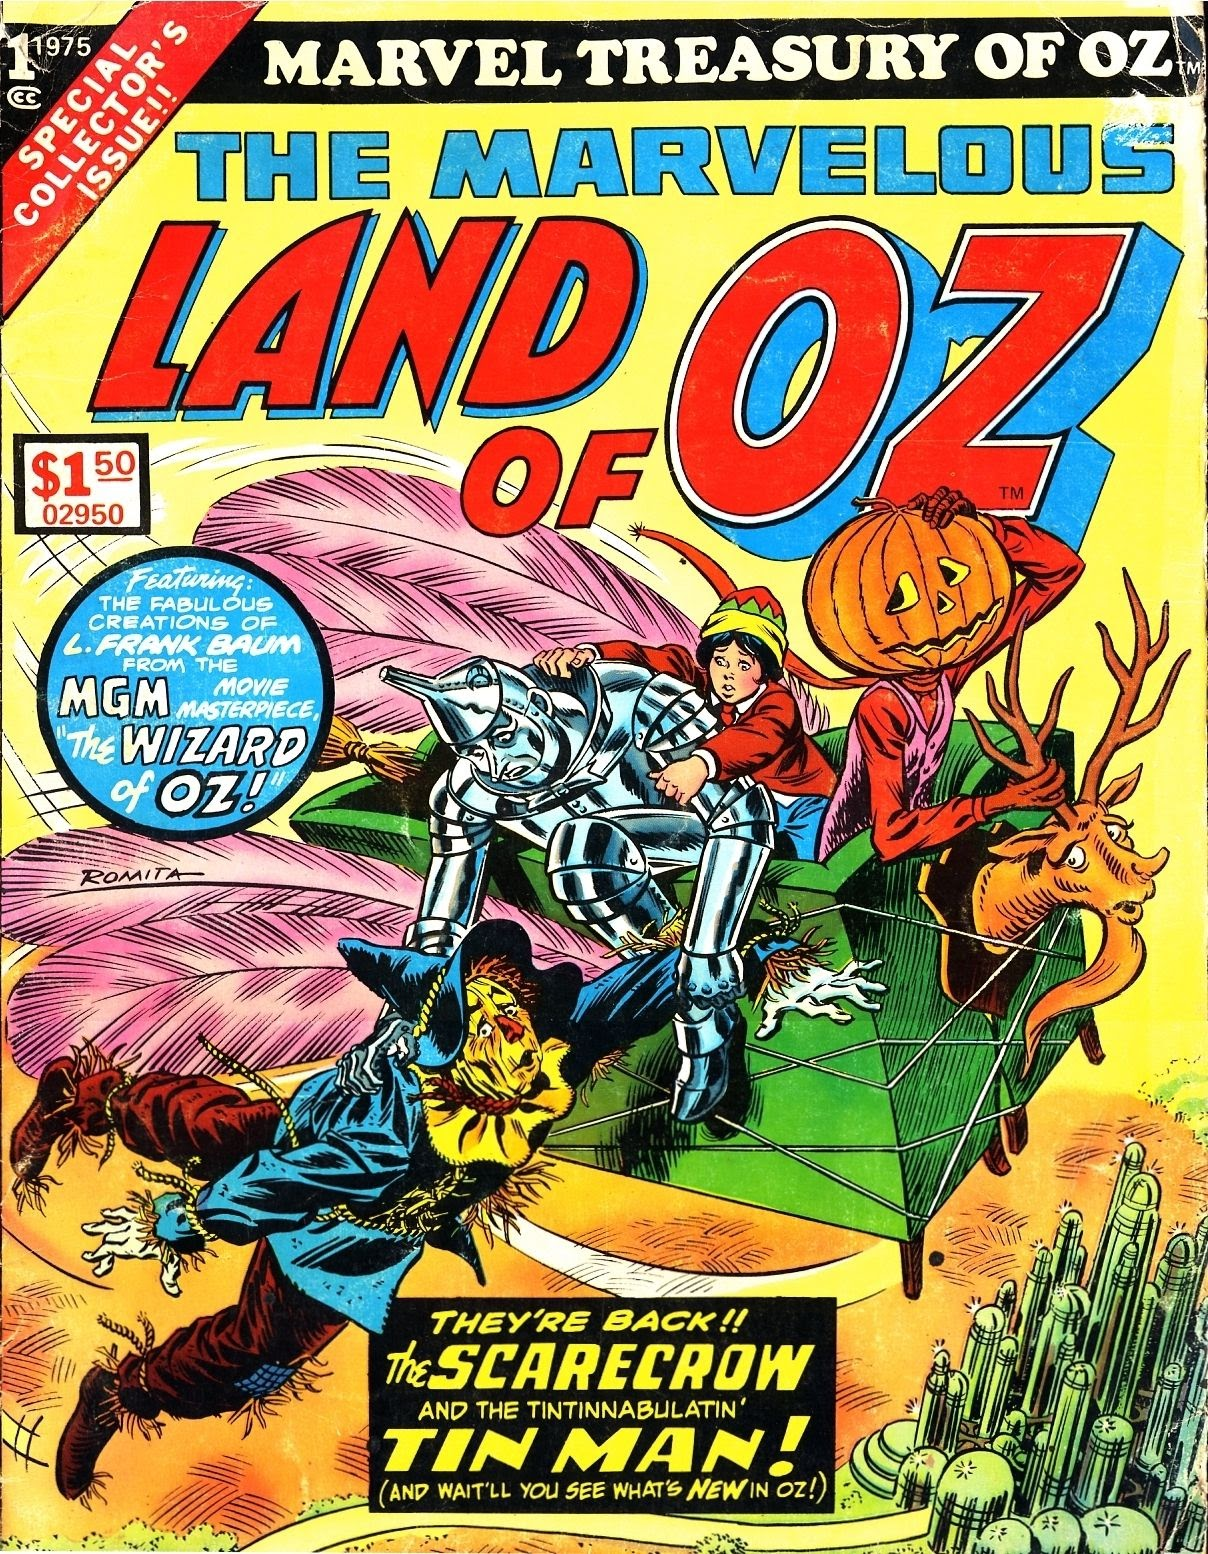 Marvel Treasury of Oz featuring the Marvelous Land of Oz Full Page 1